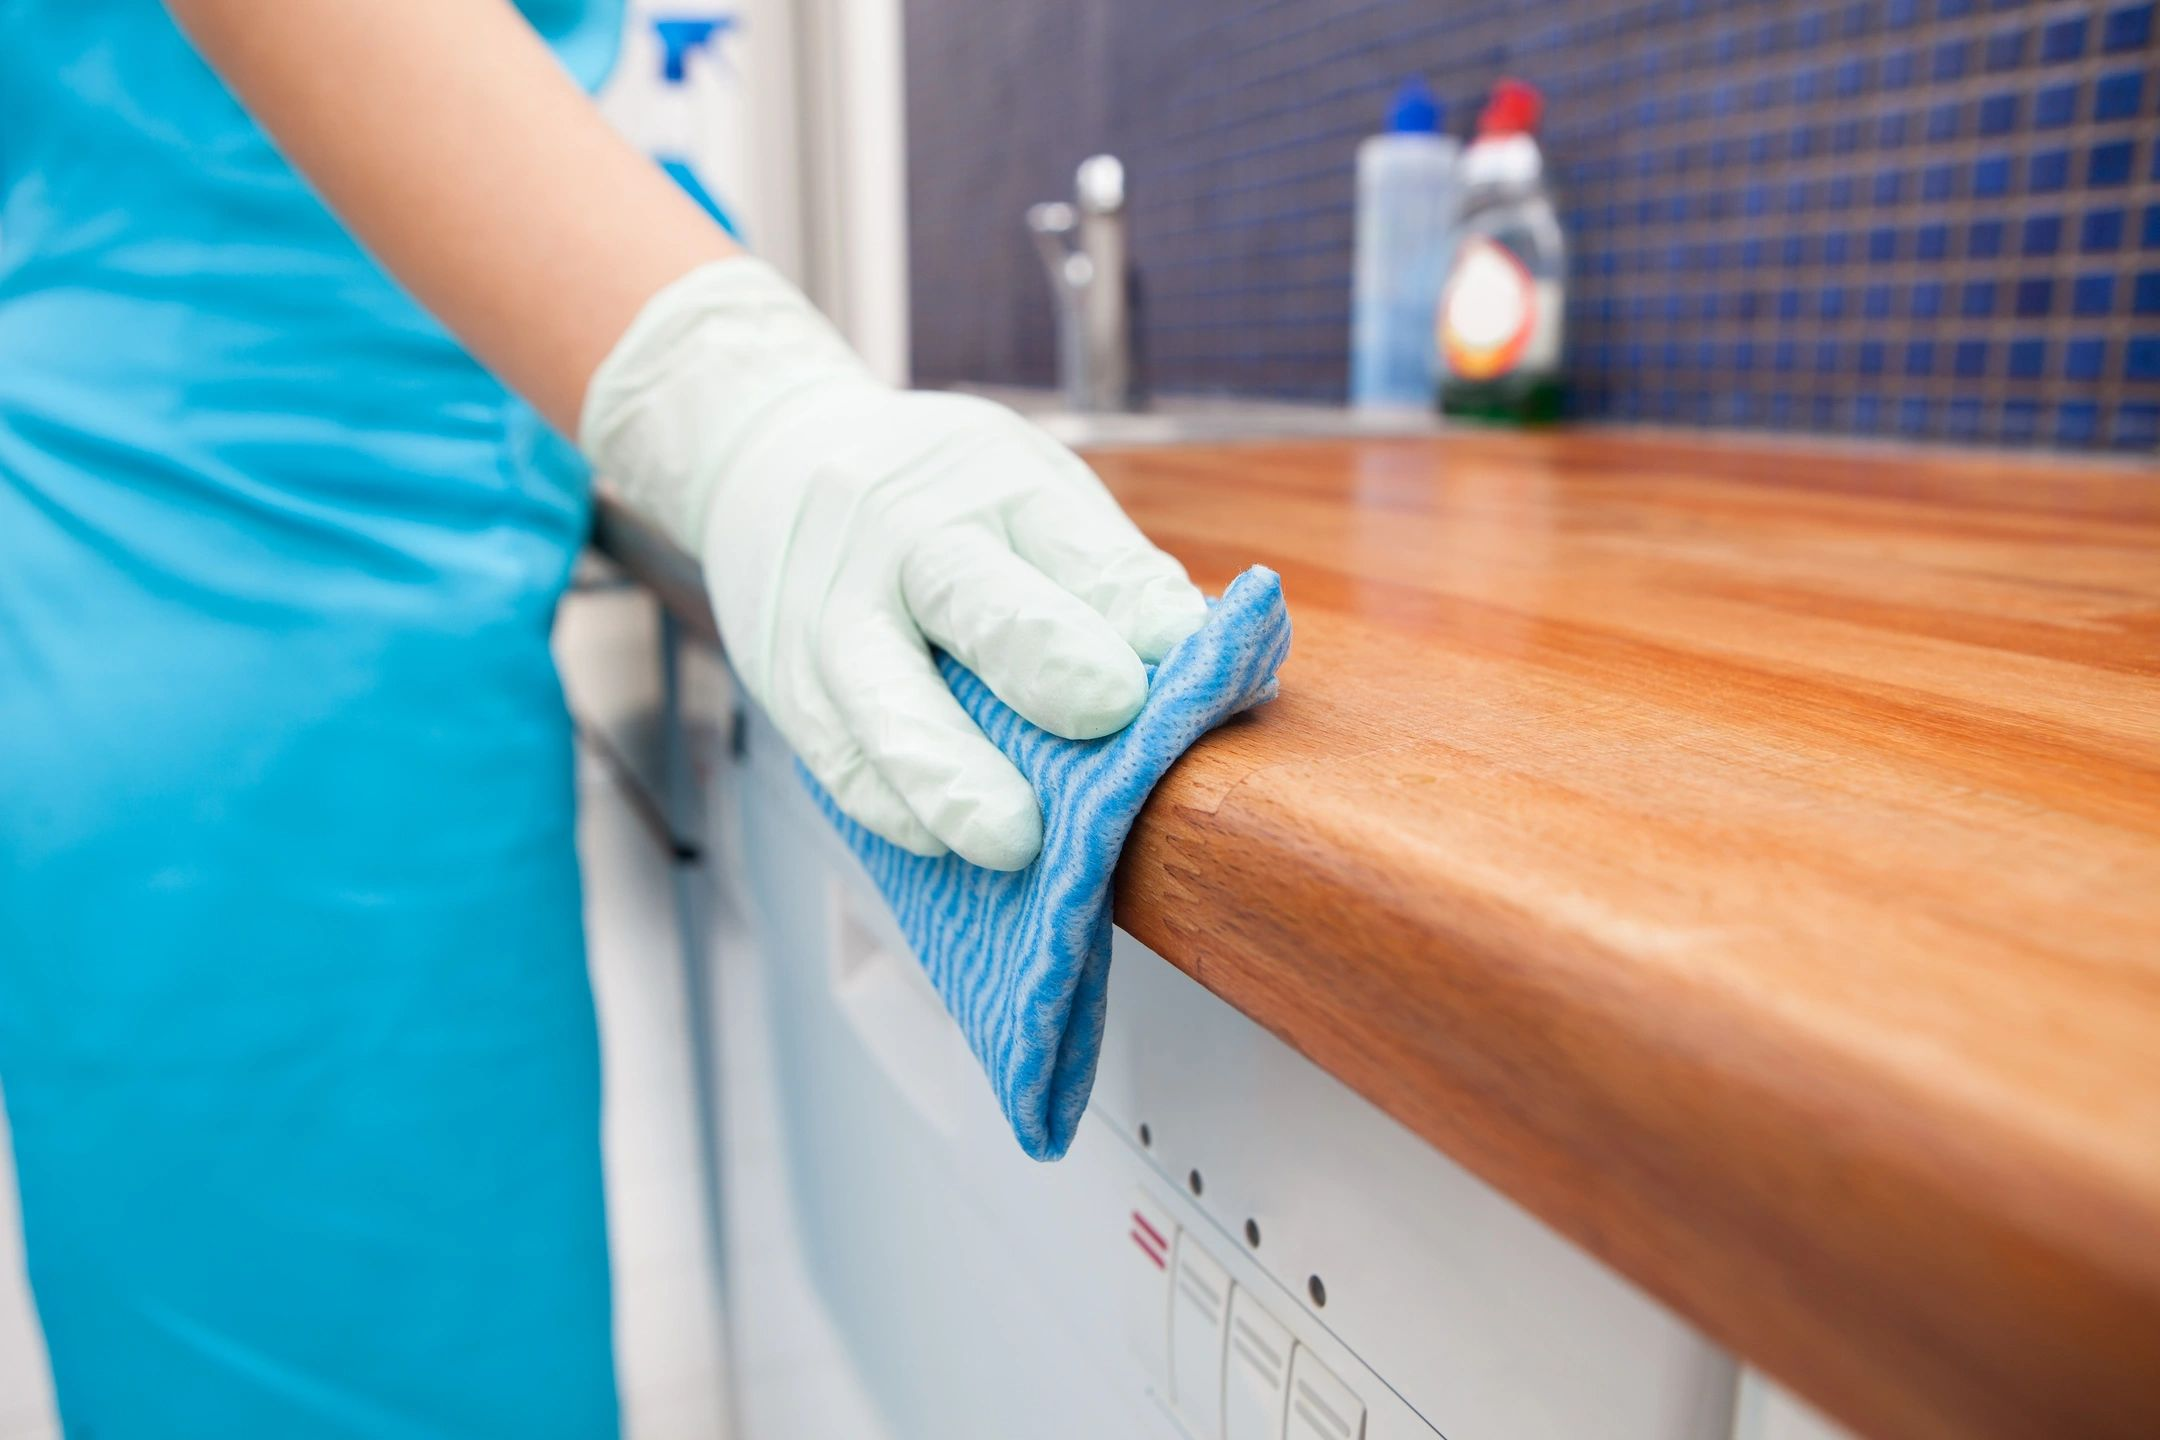 hand cleaning counter